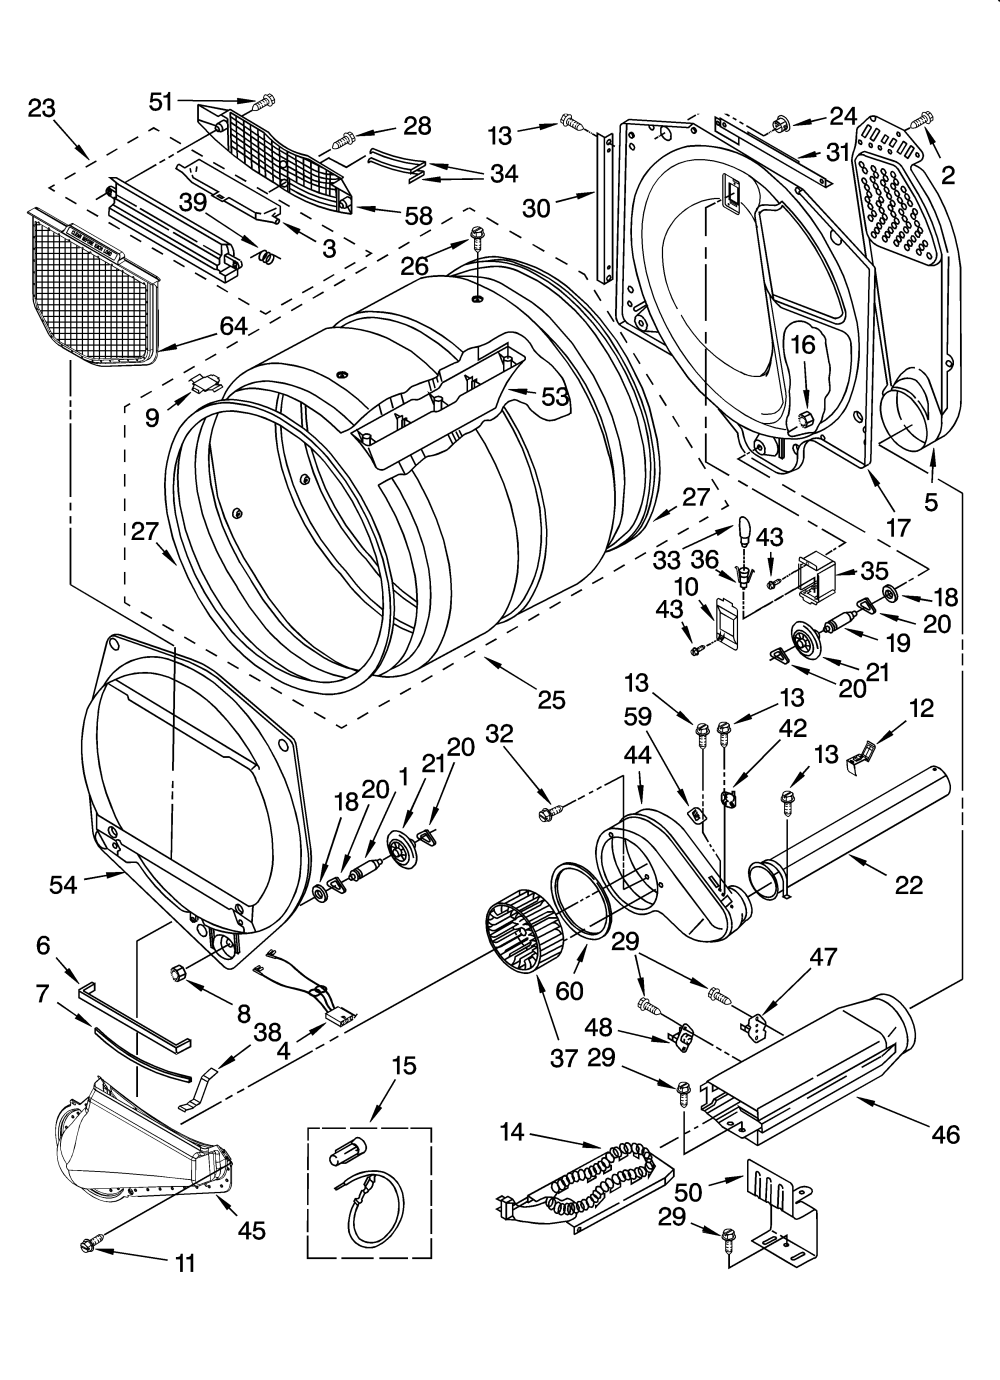 medium resolution of wiring diagram for kenmore dryer